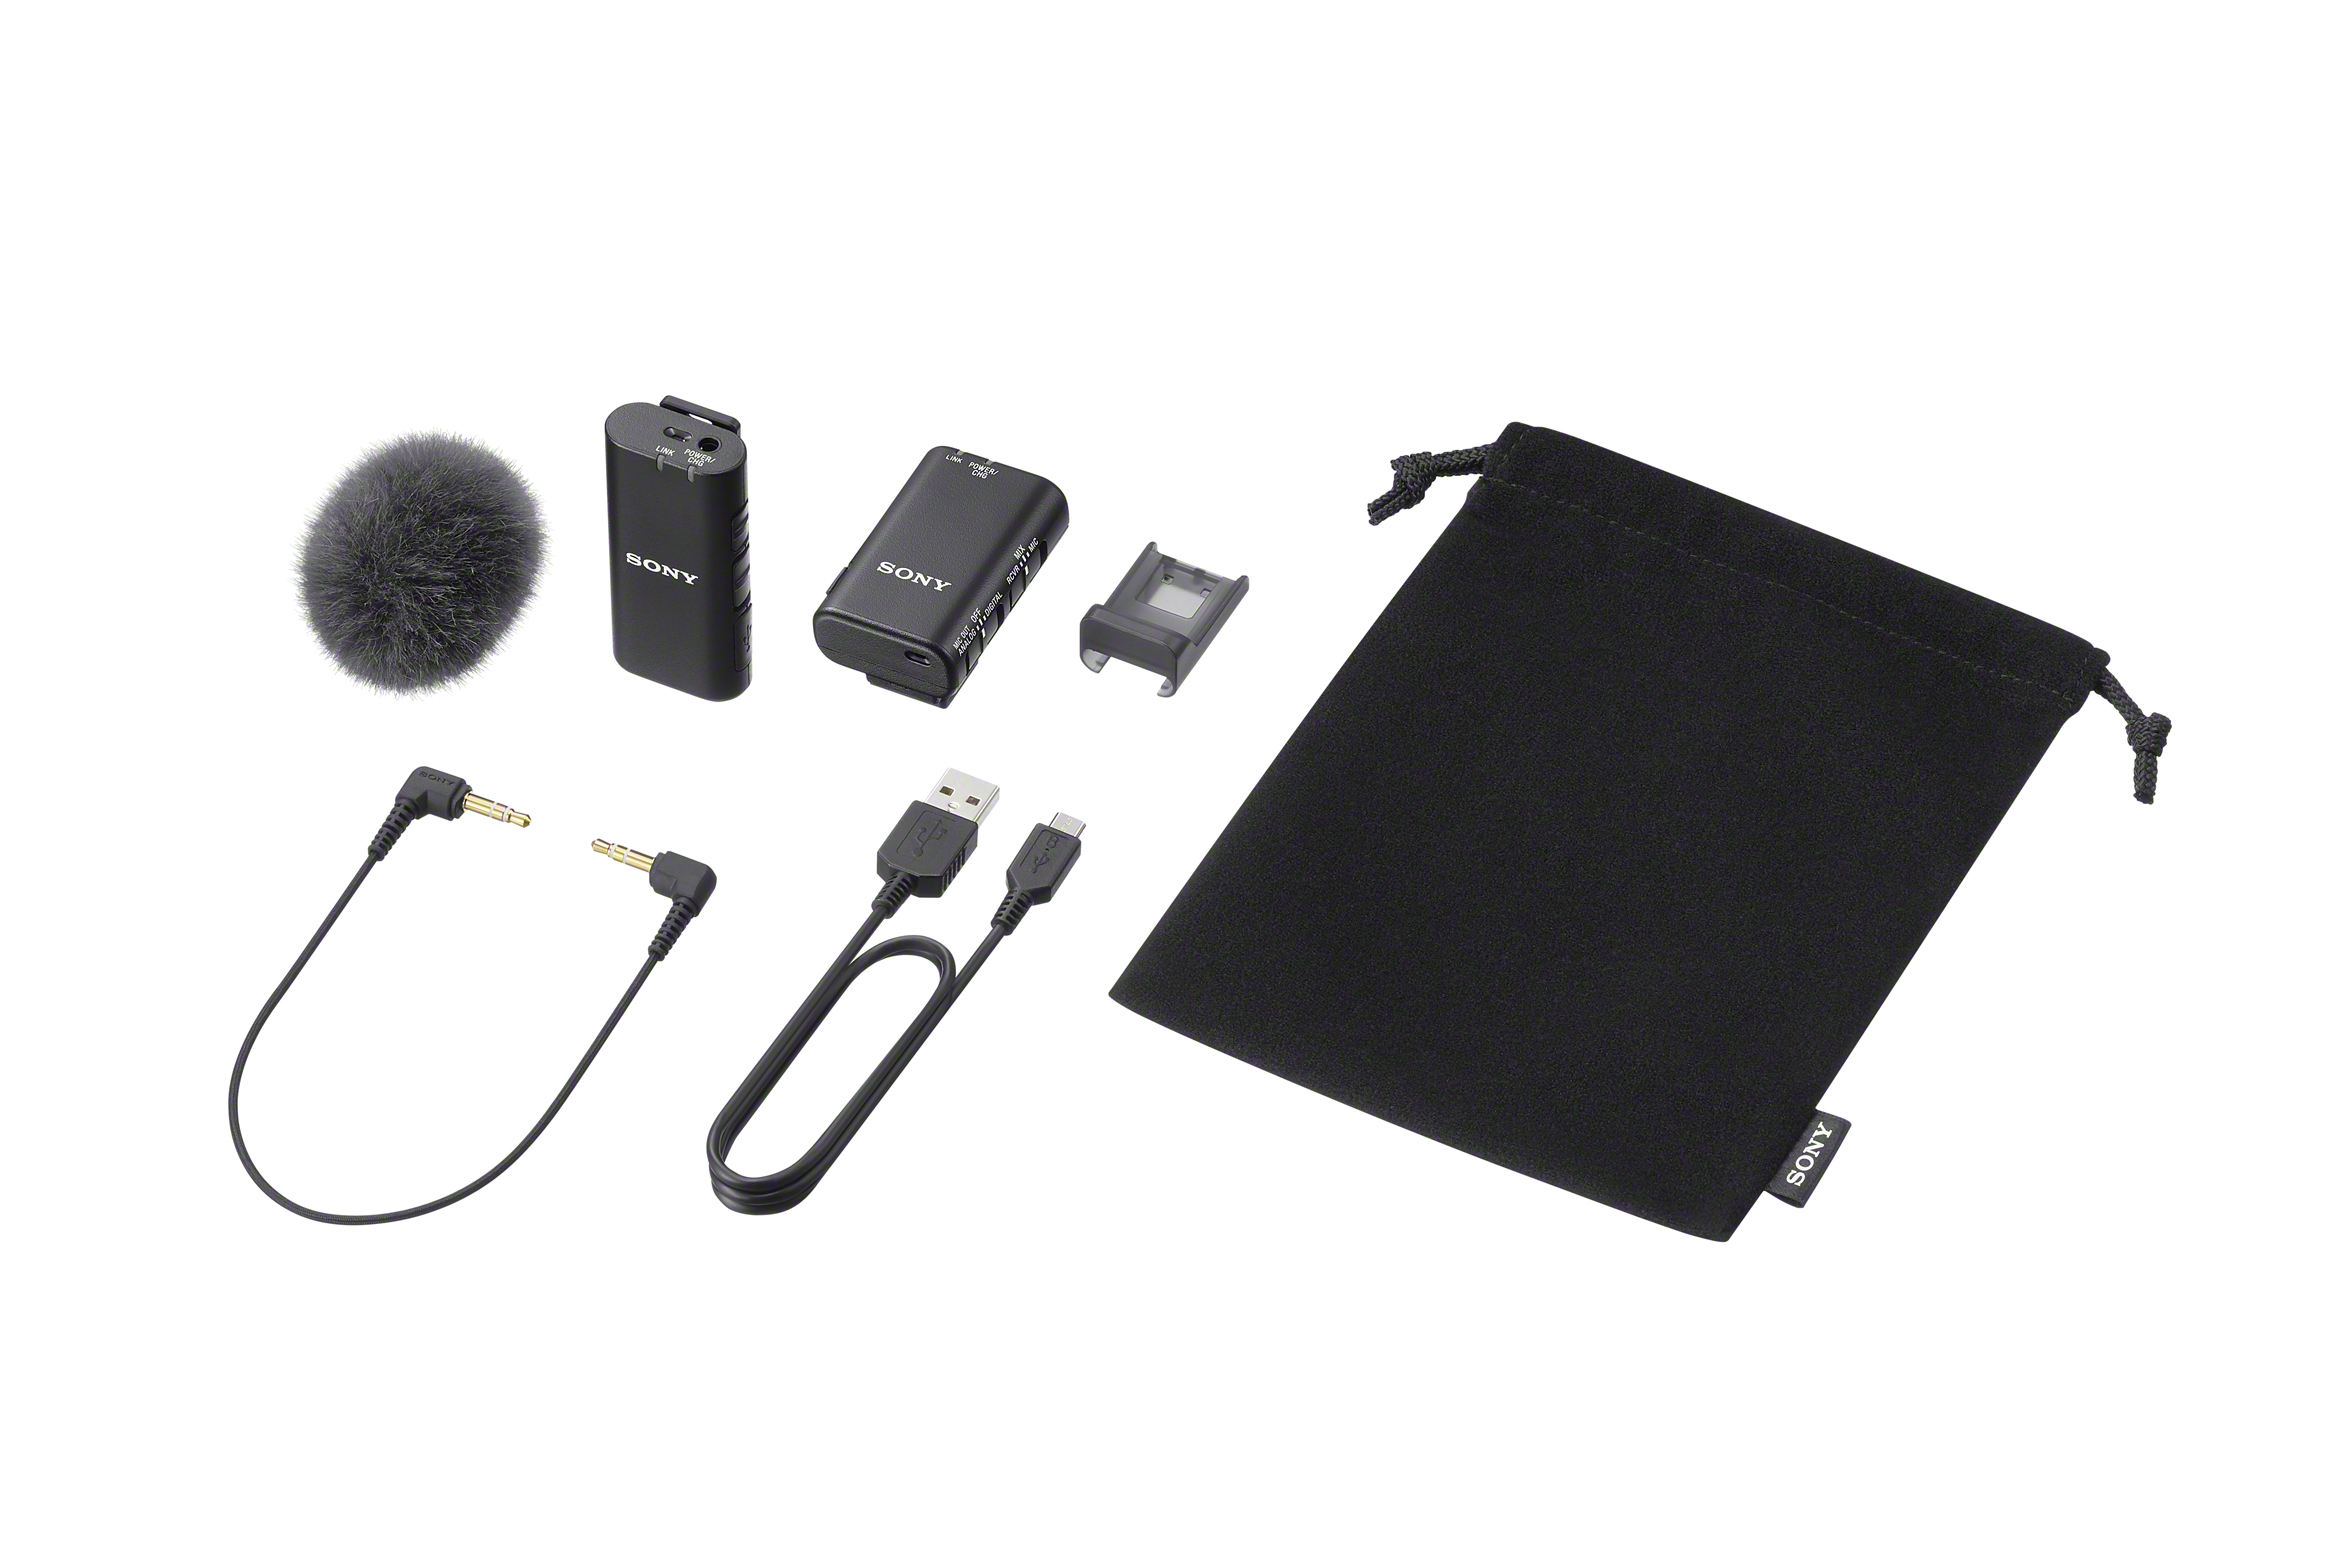 Sony Electronics Announces the ECM-W2BT Wireless Microphone  and the ECM-LV1 Compact Stereo Lavalier Microphone